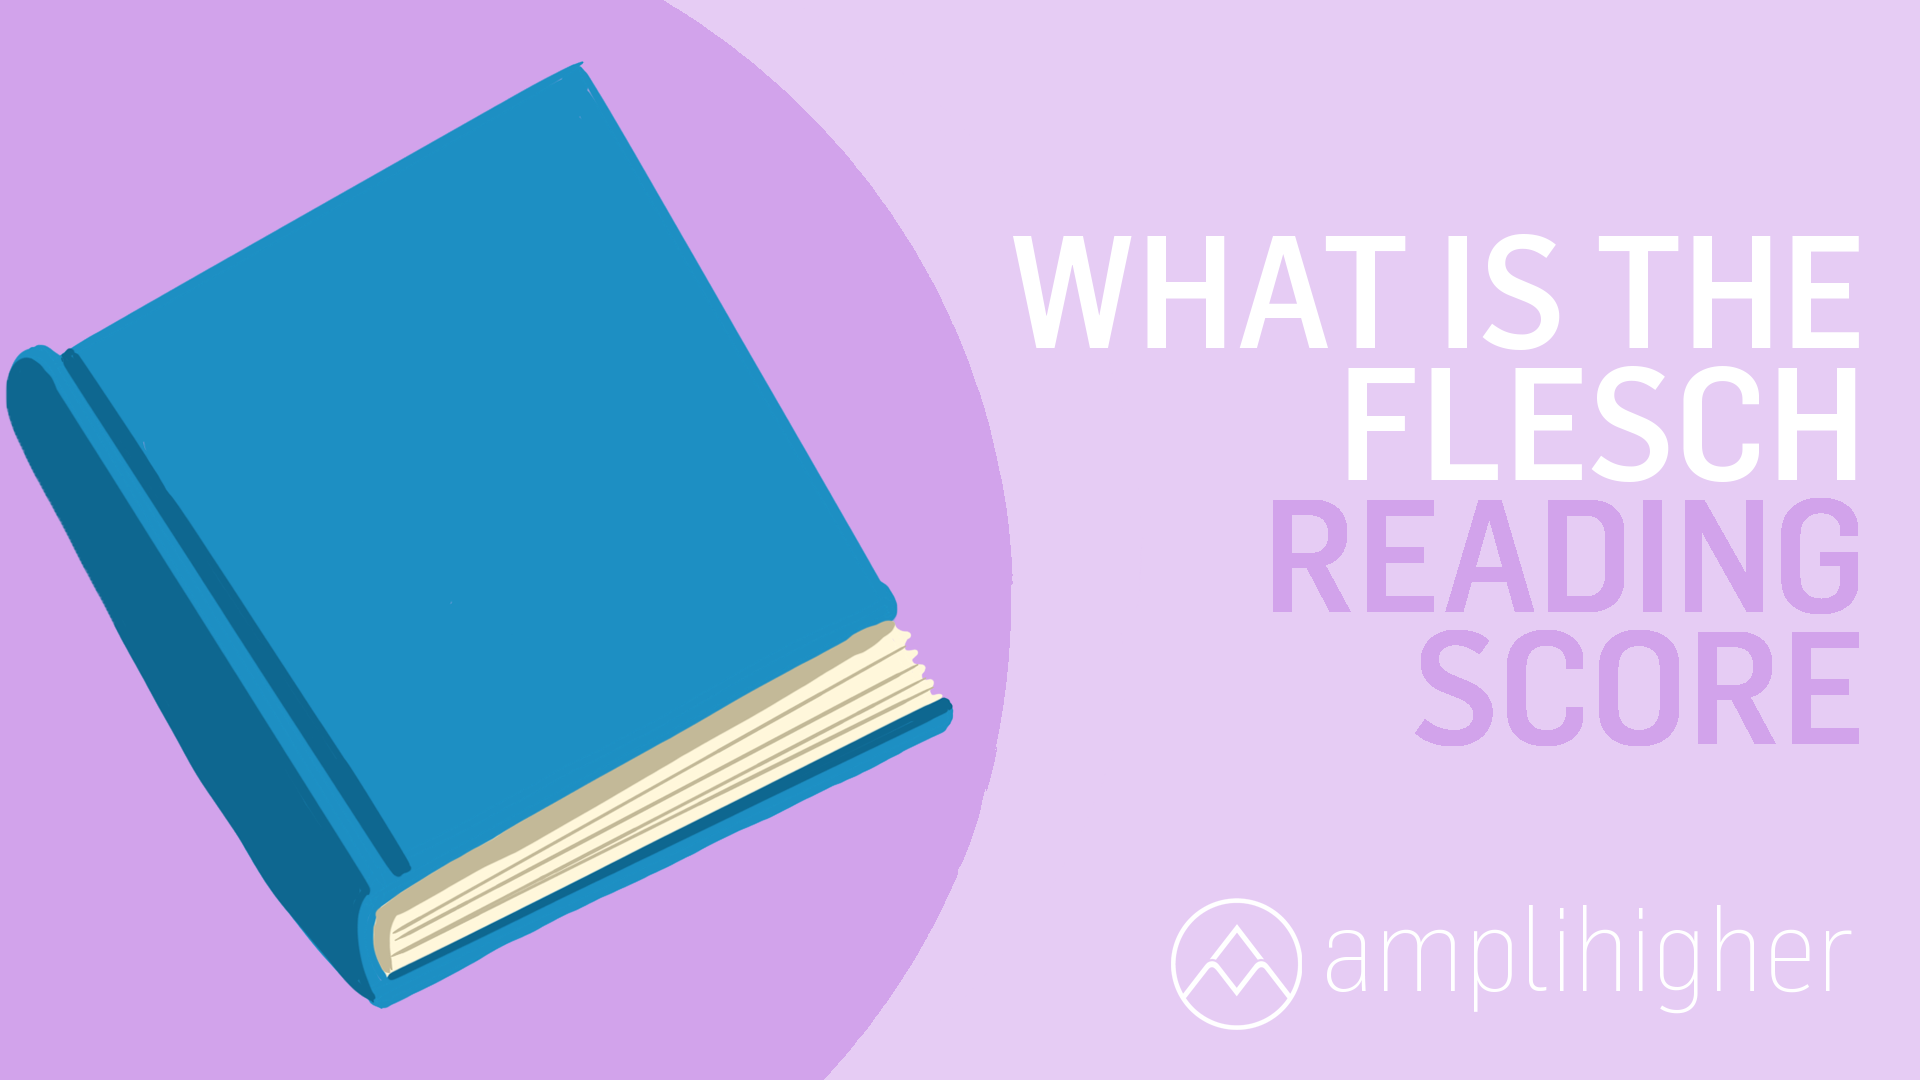 4 Ways To Improve Your Flesch Reading Ease Score